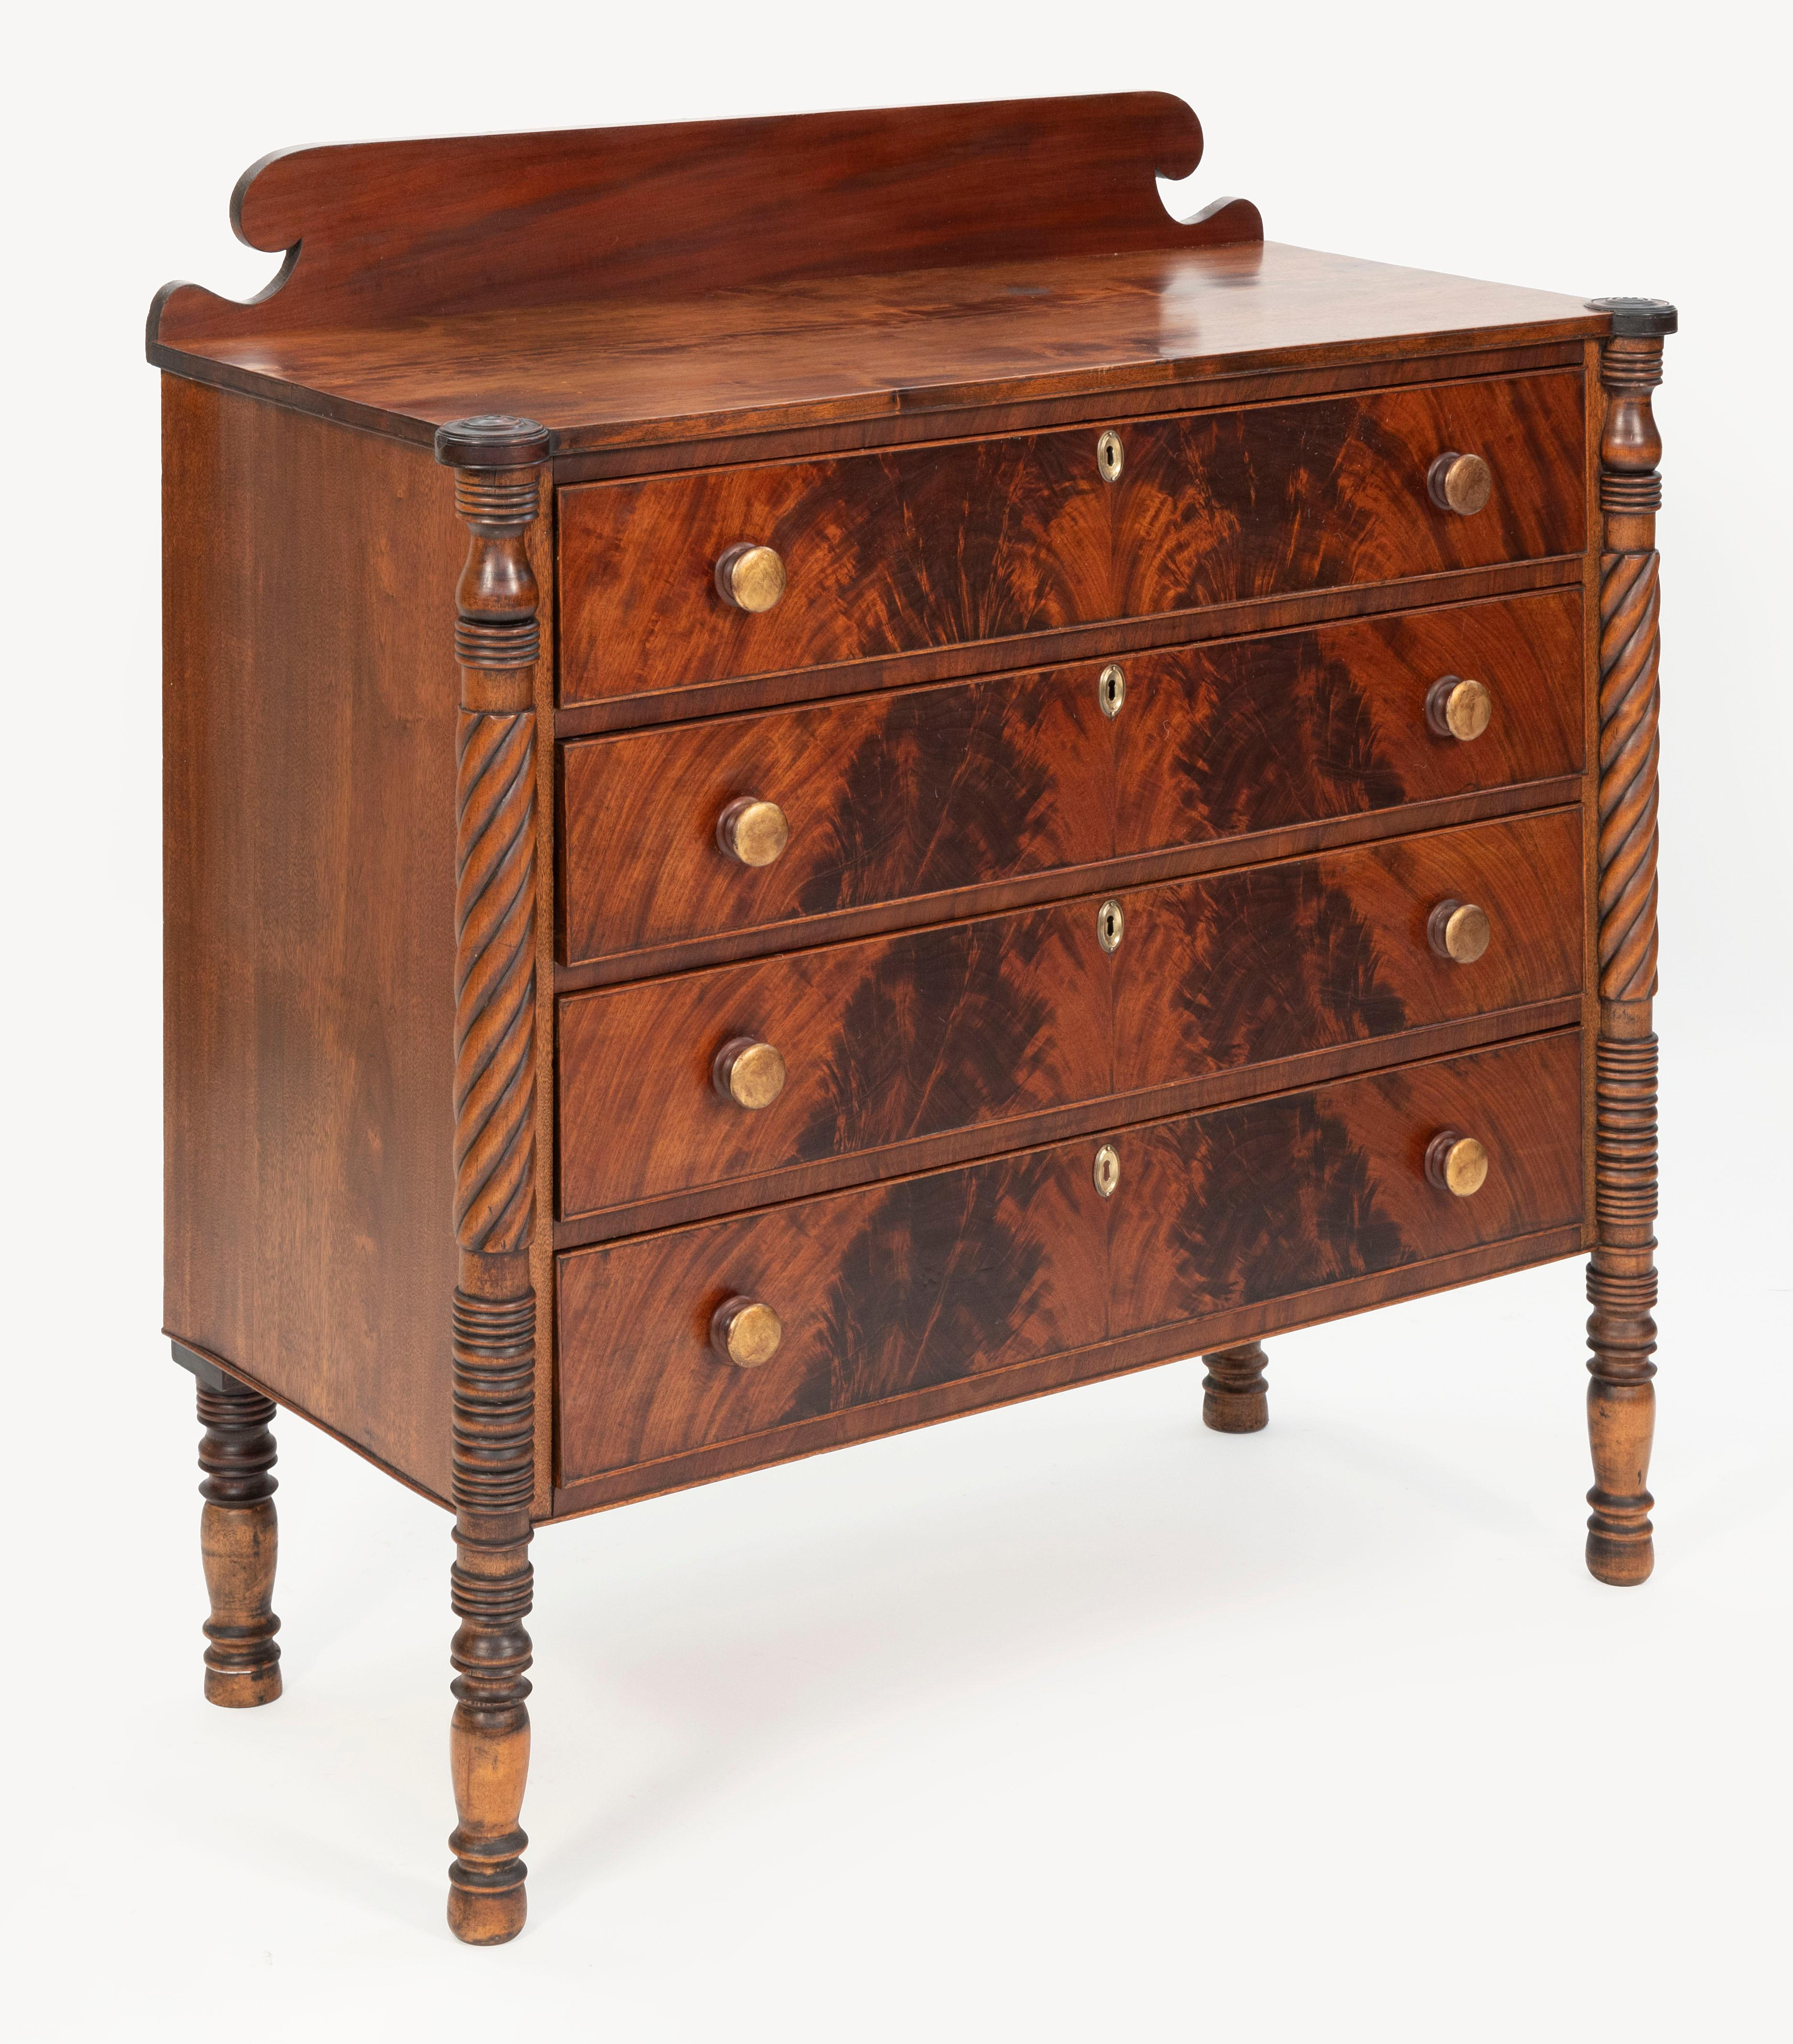 "SHERATON COOKIE-CORNER FOUR-DRAWER CHEST Circa 1840 Height 44.5"". Width 43.75"". Depth 20""."